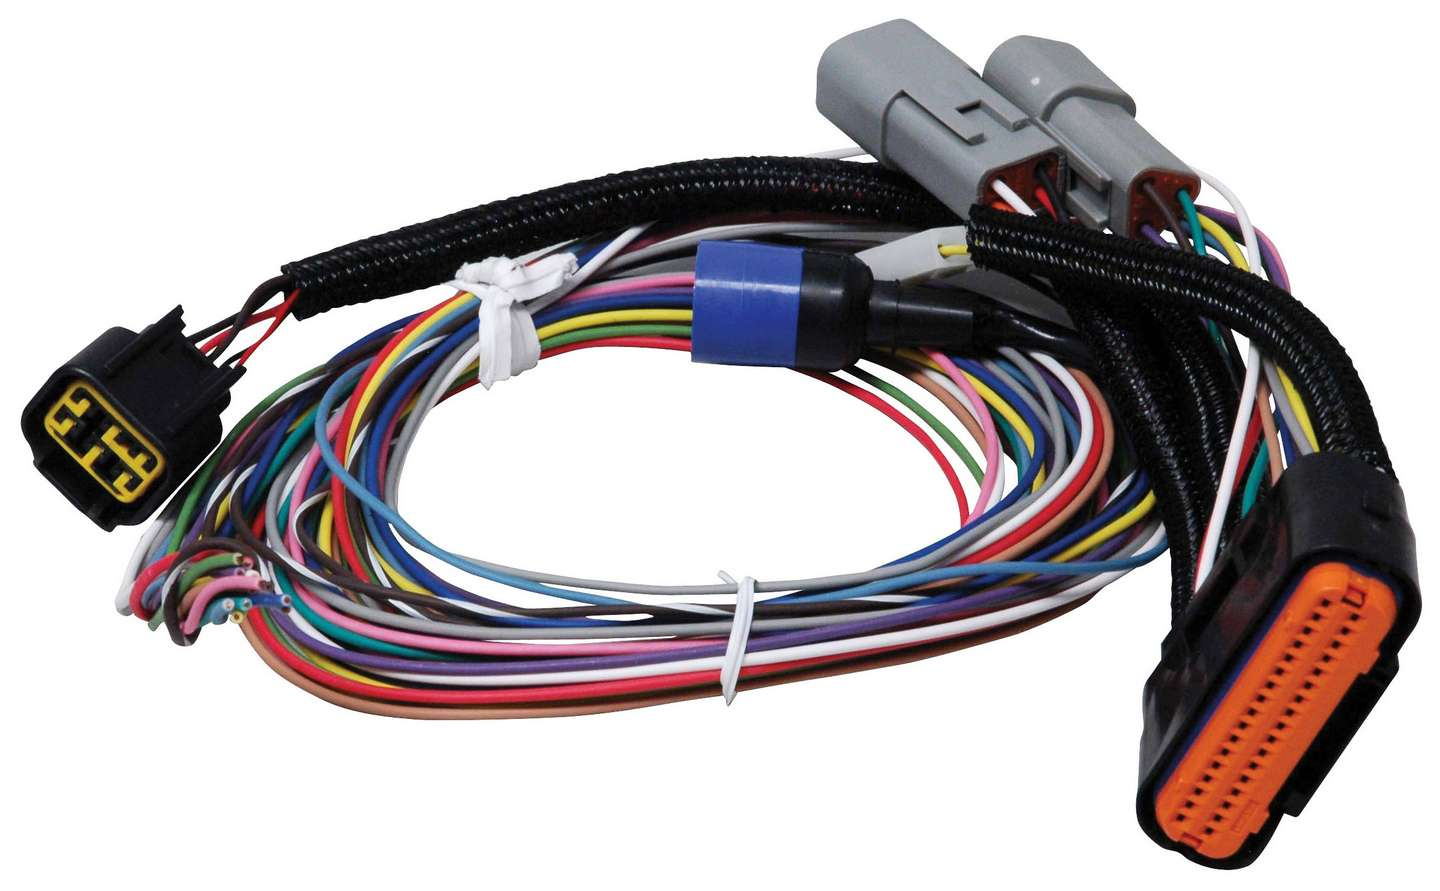 msd 7780 1 search results etheridge race parts Ford MSD Ignition Wiring Diagram at bayanpartner.co